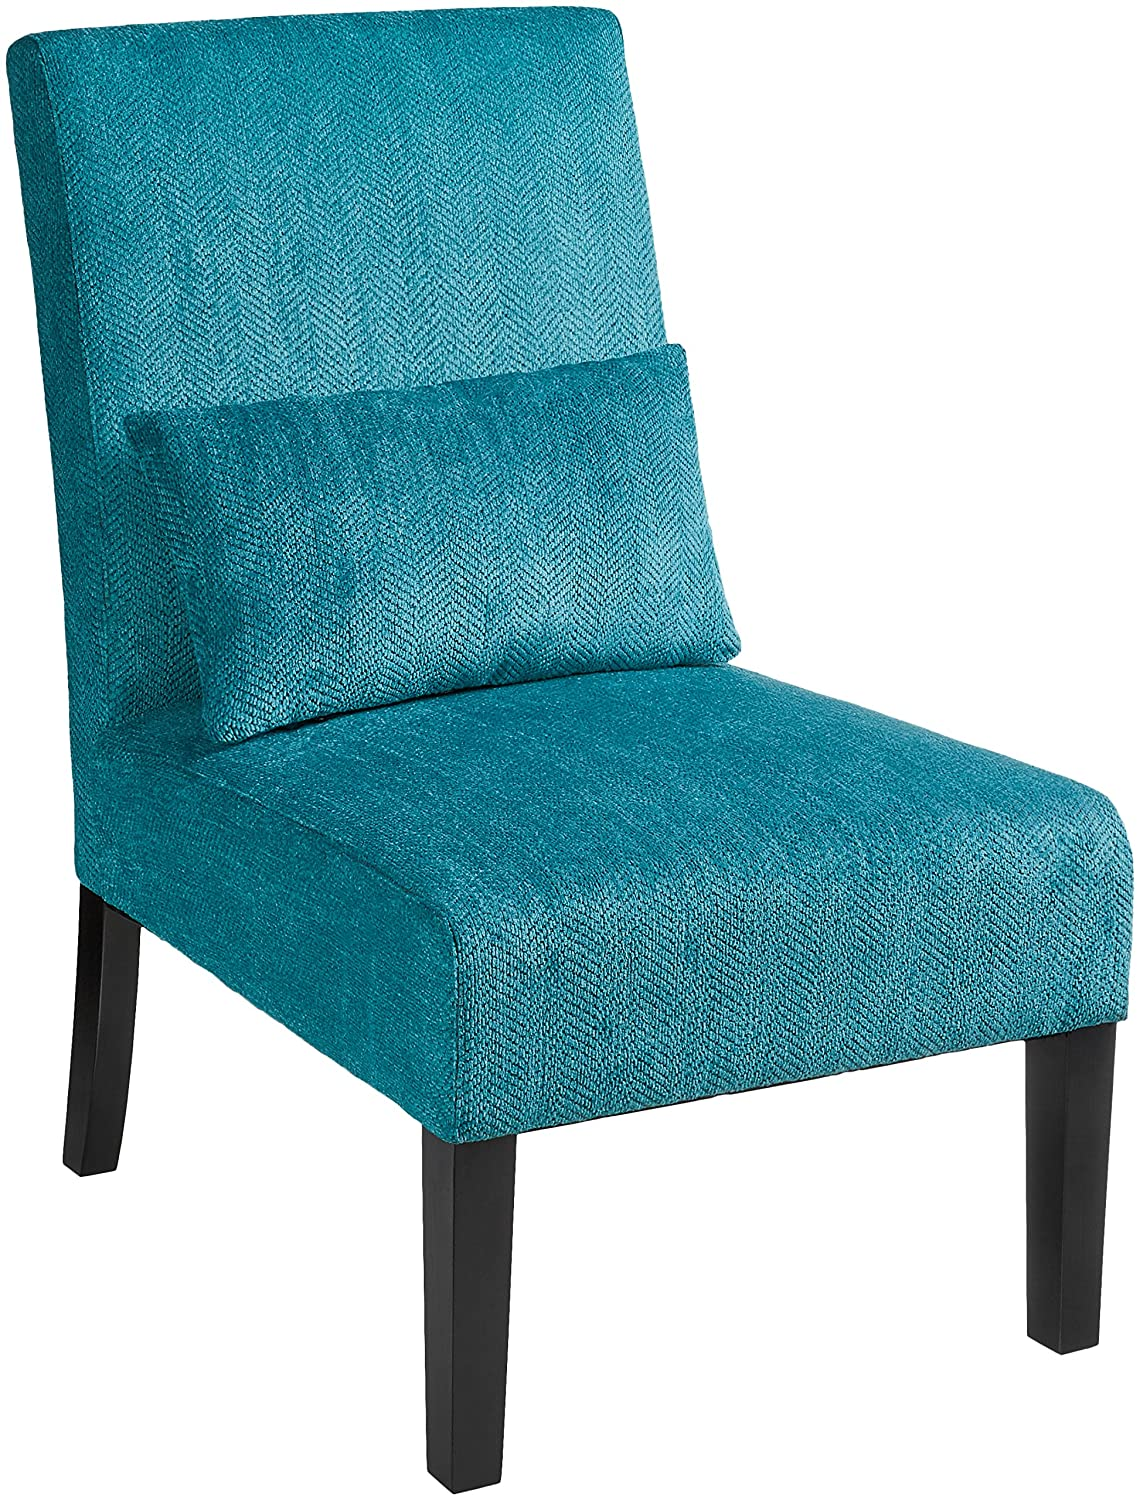 Best Accent Chair Reviews 9